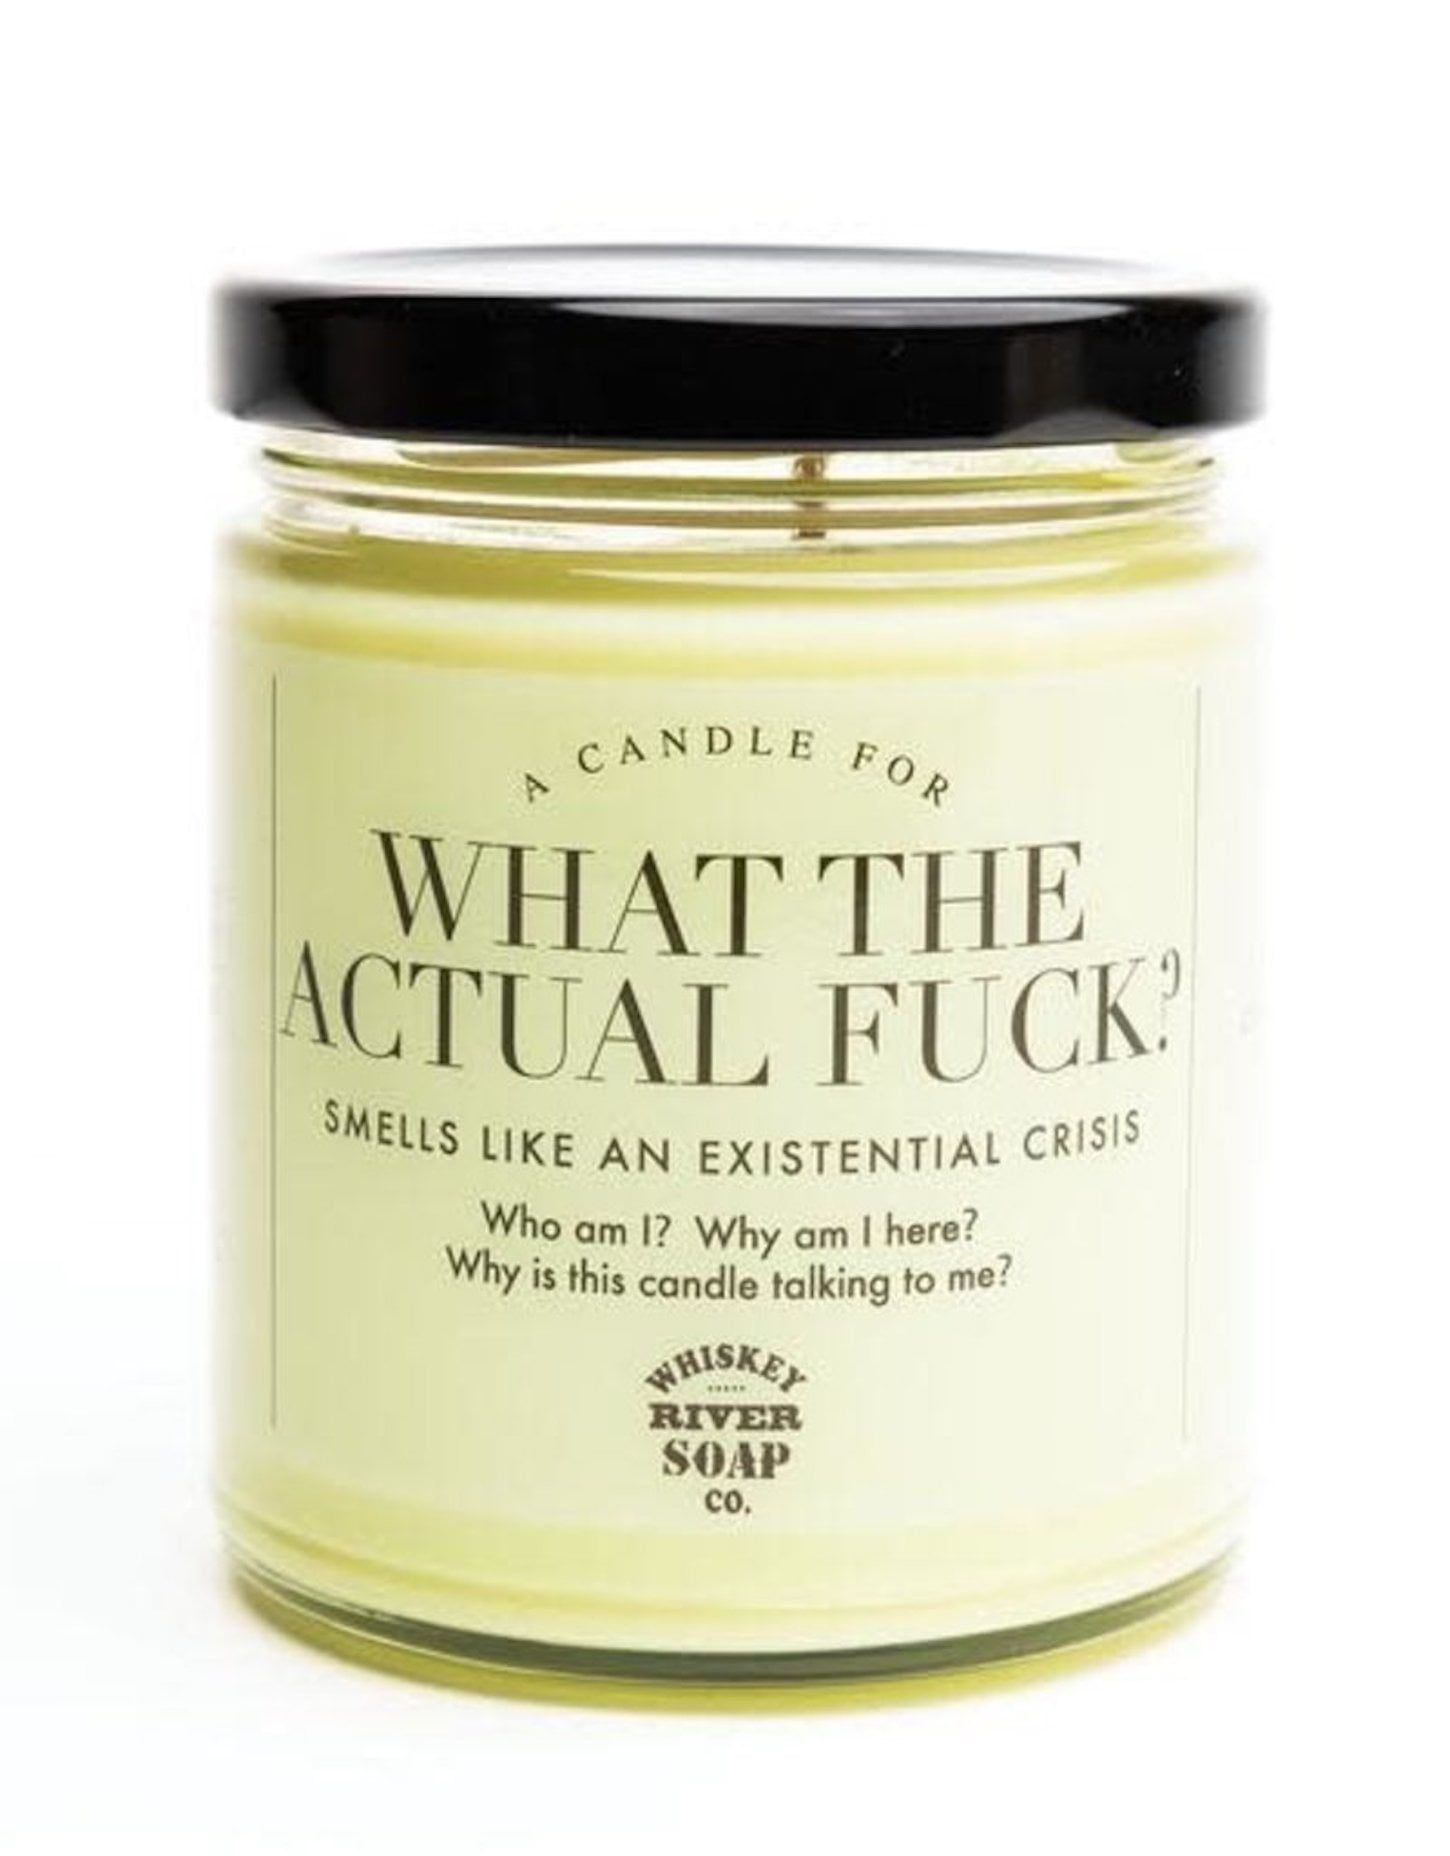 This What The Actual F Ck Candle Smells Like An